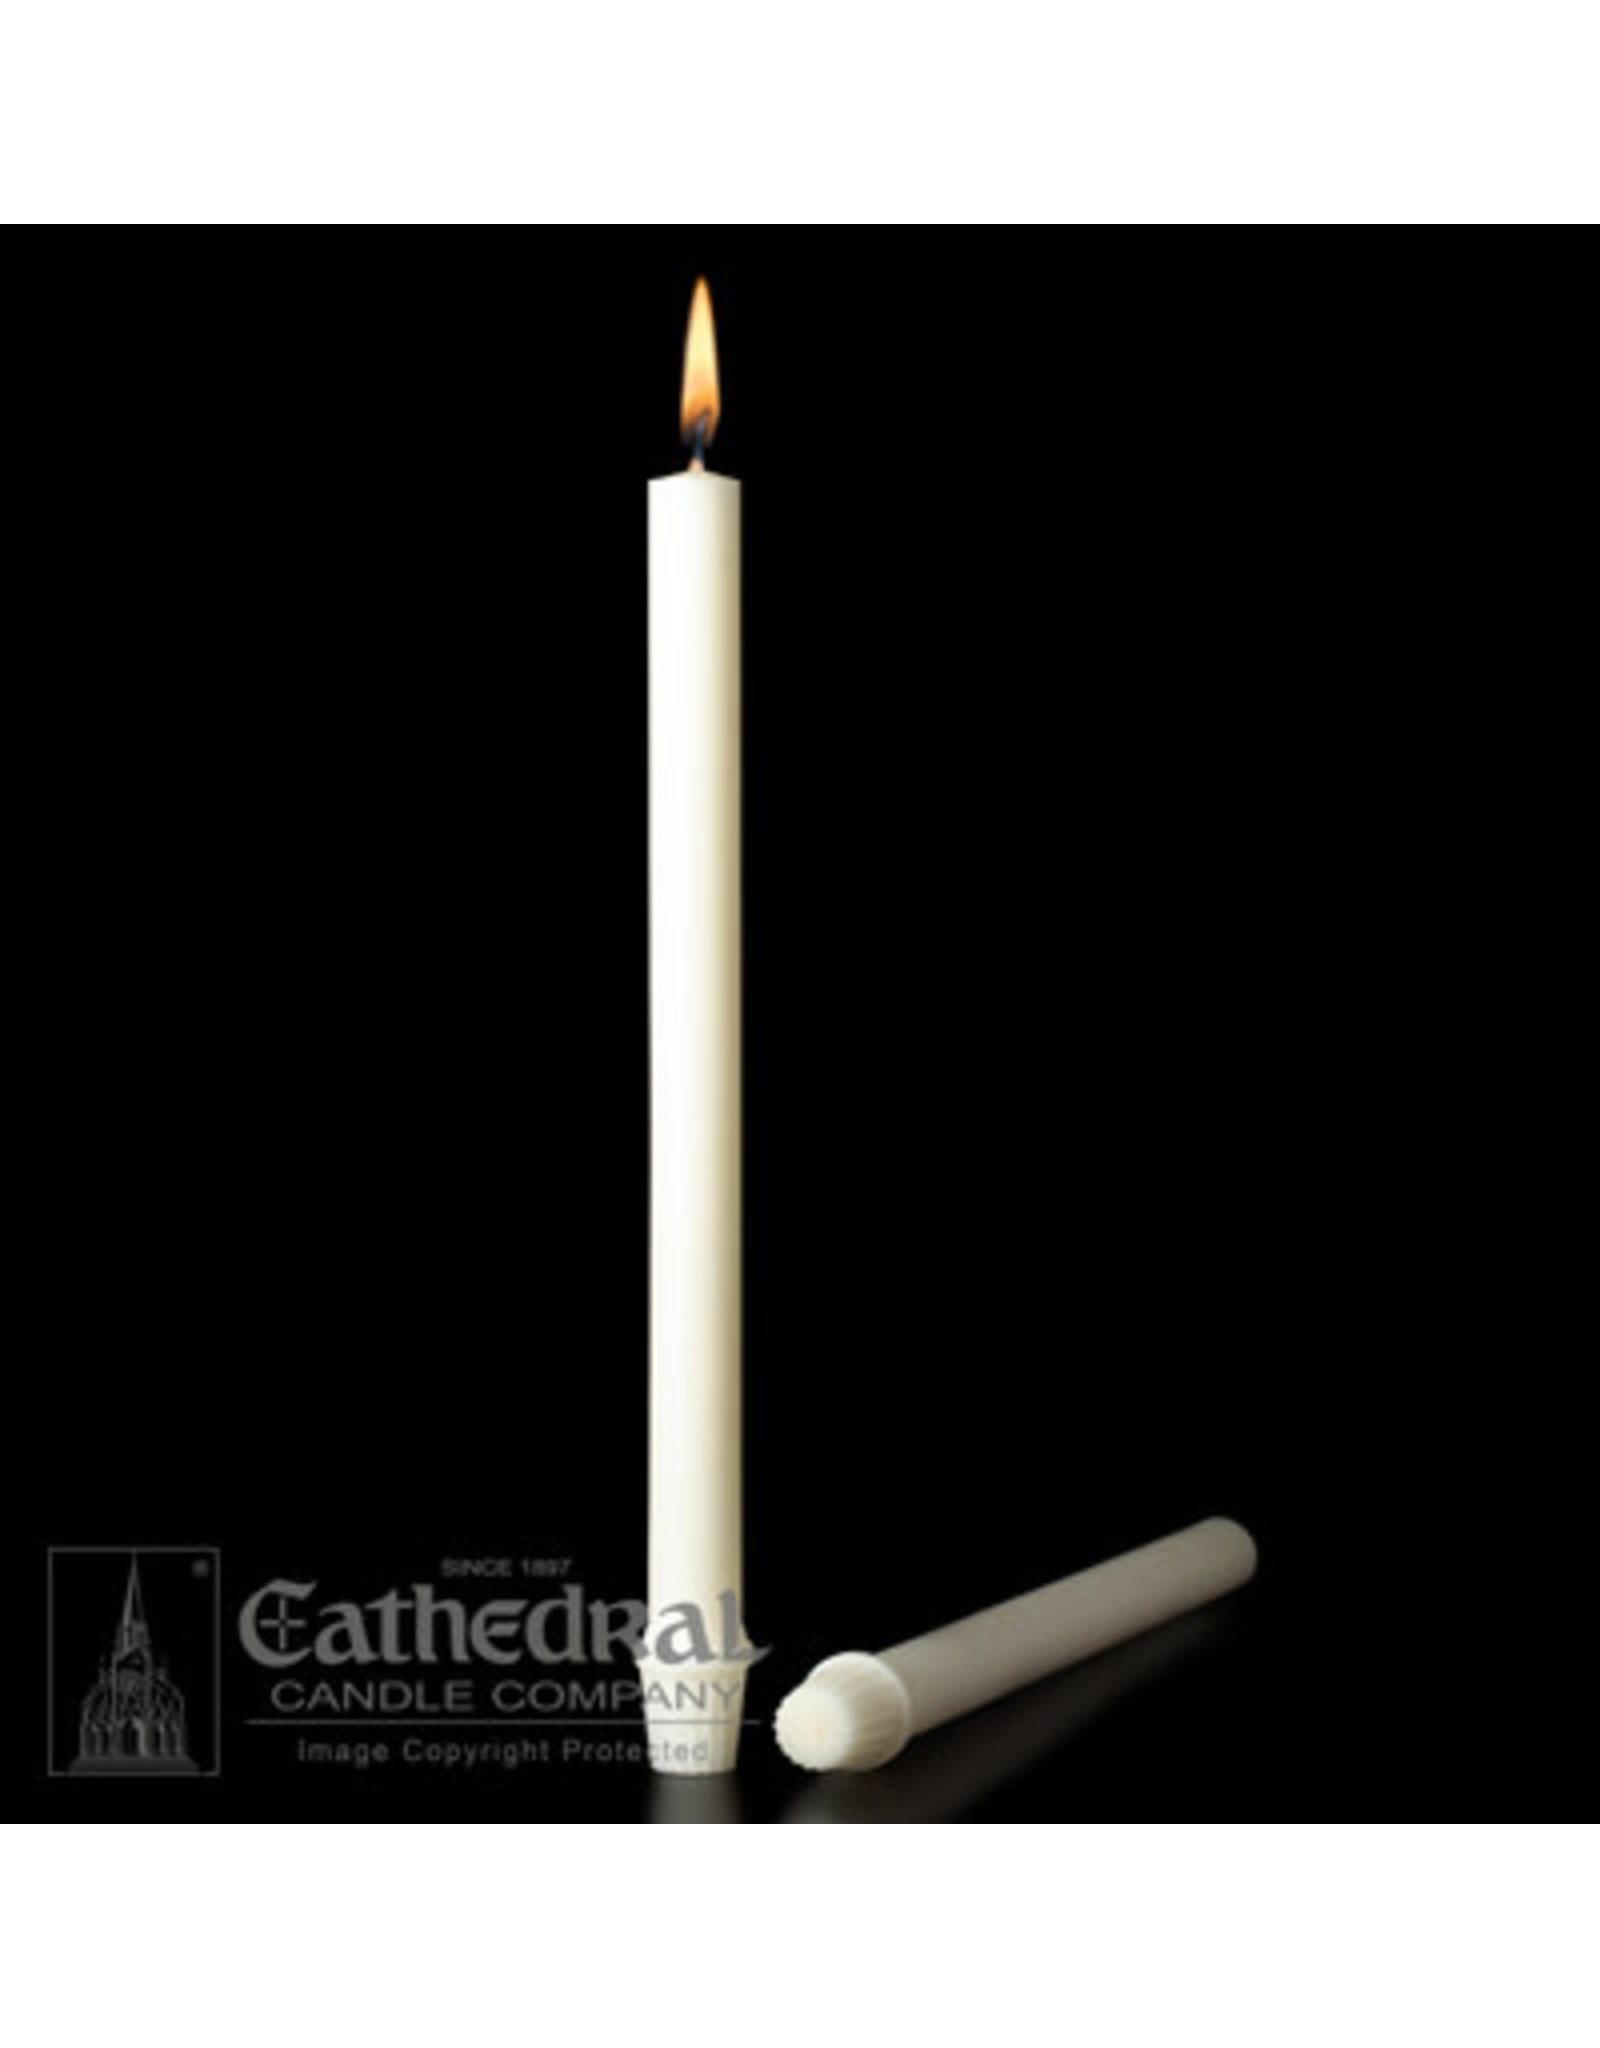 """51% Beeswax Altar Candles 1-1/8""""x10.5"""" SFE (18)"""